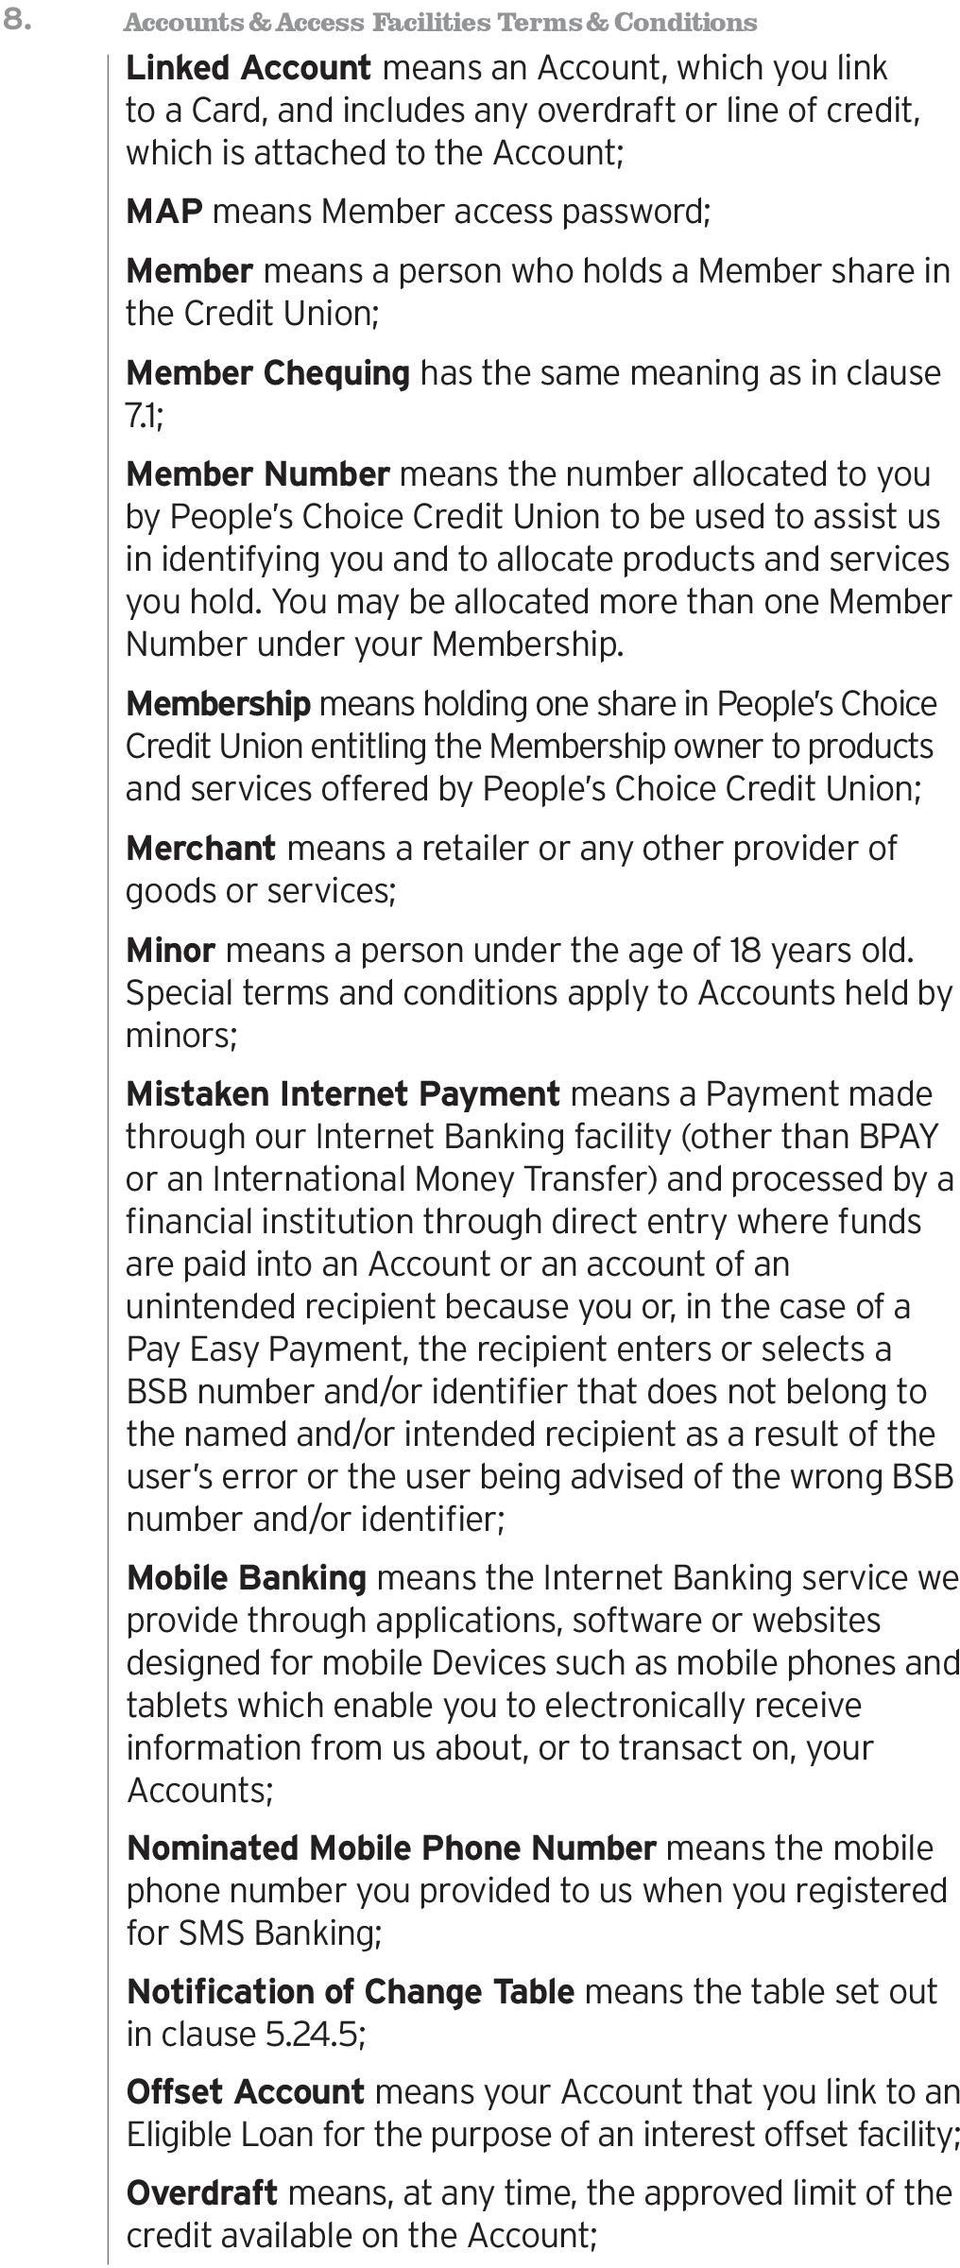 1; Member Number means the number allocated to you by People s Choice Credit Union to be used to assist us in identifying you and to allocate products and services you hold.